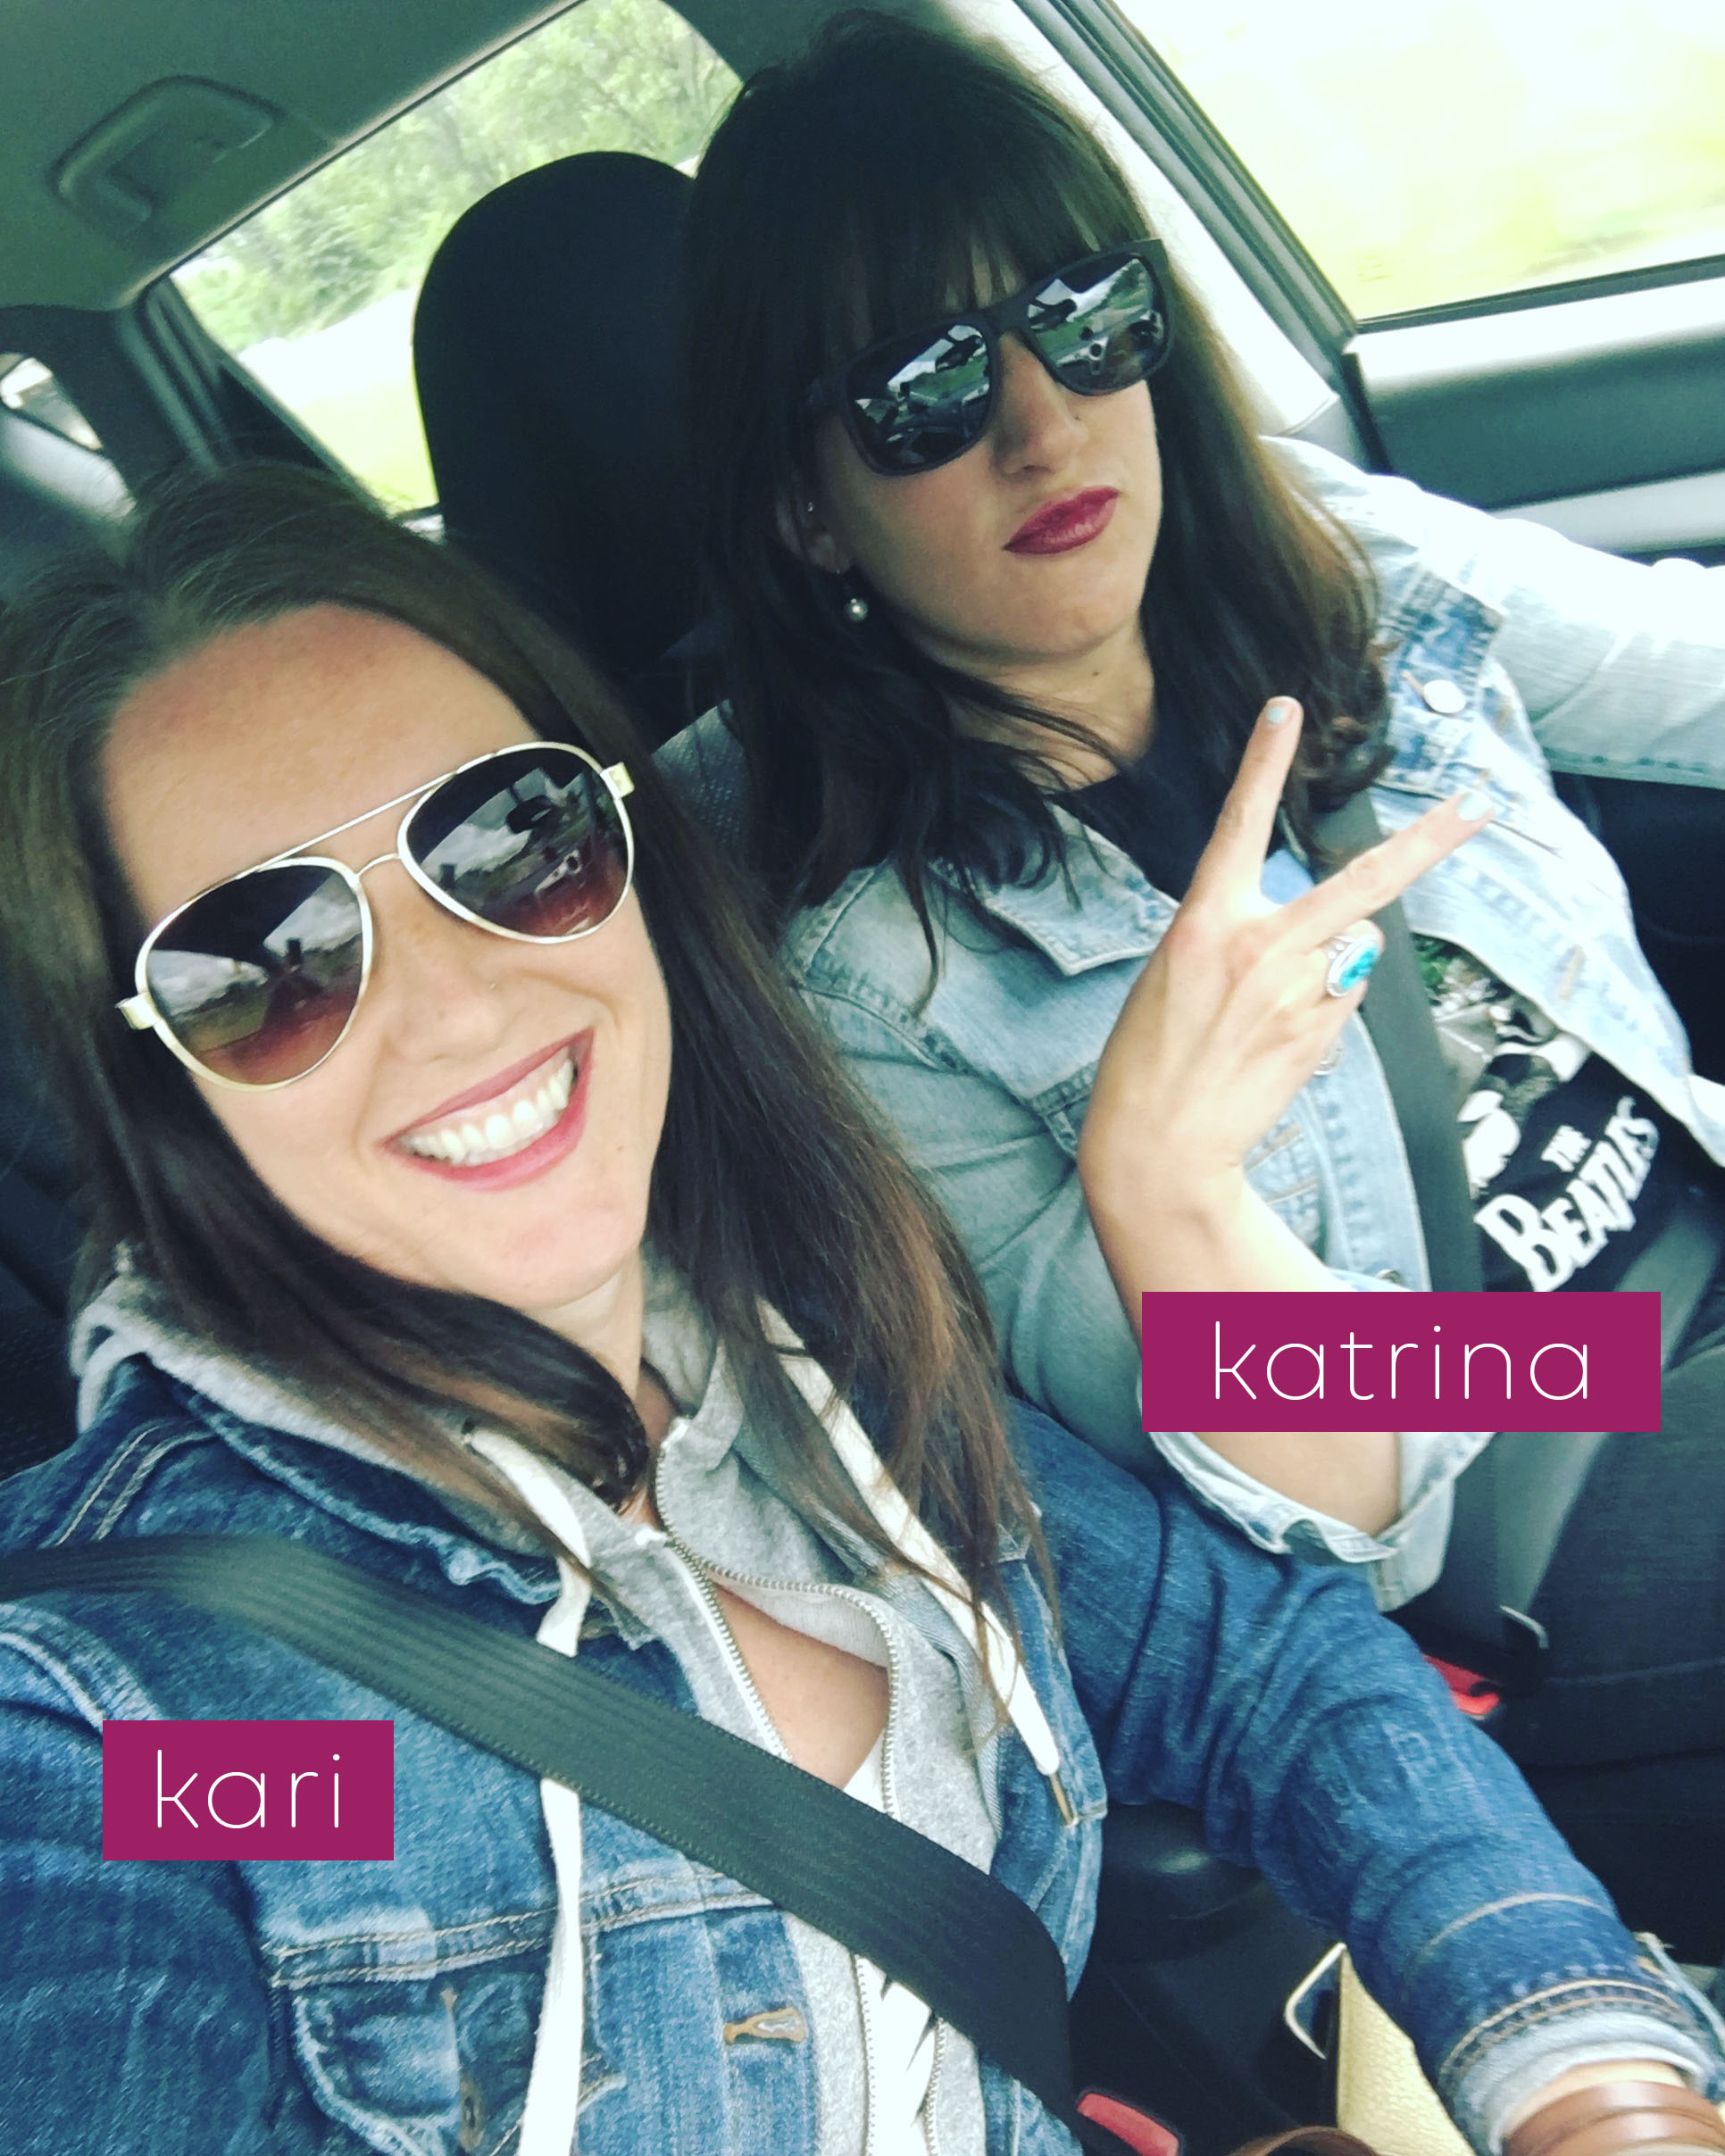 We are Kari & Katrina. We get to spend our days running this amazing little business we call Tandem Creative.